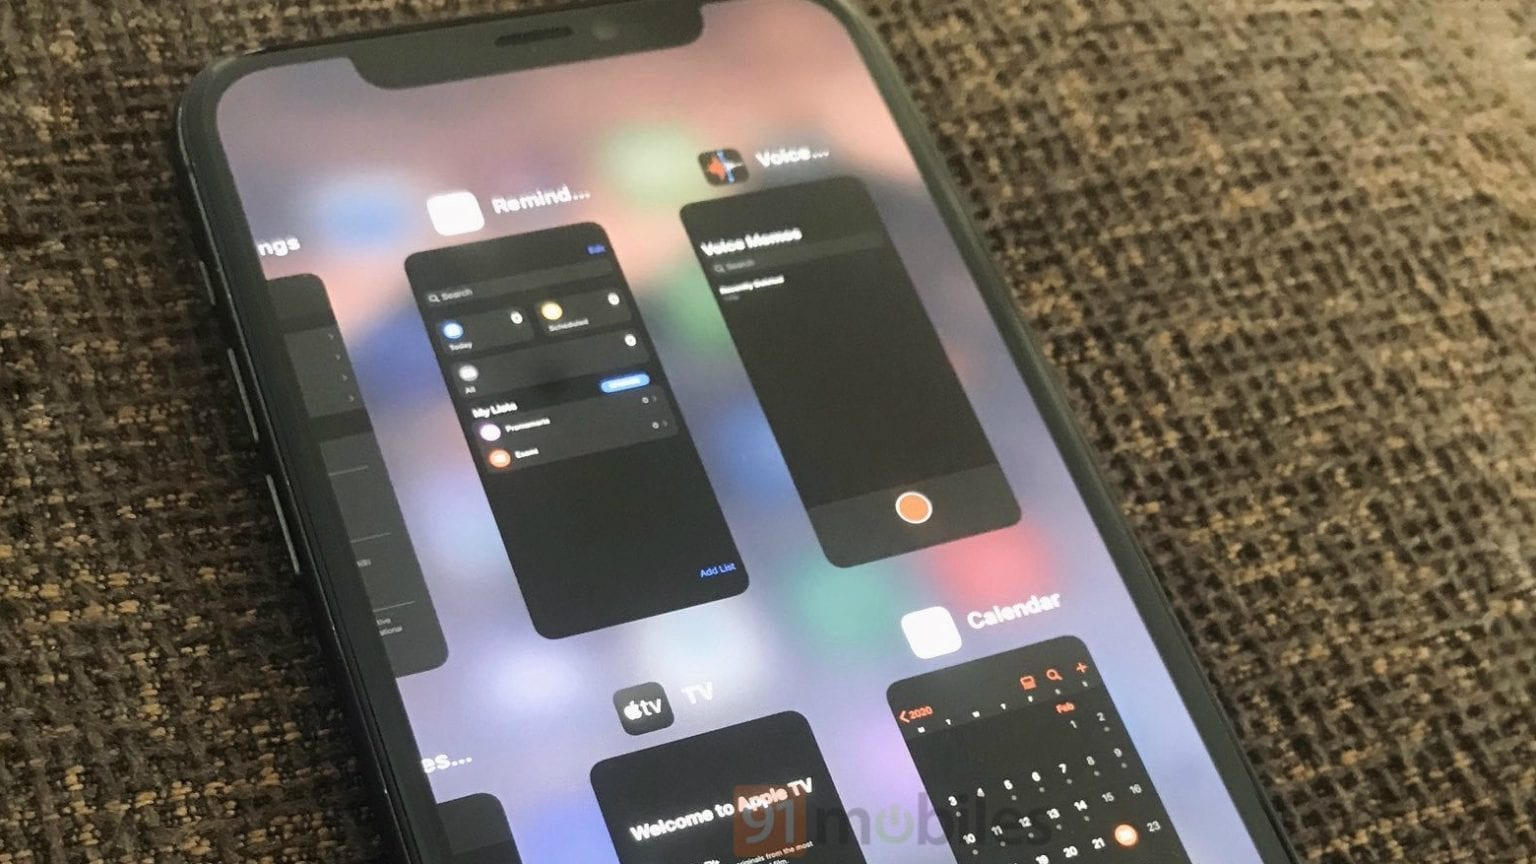 iOS 14 multitasking system borrows from iPadOS